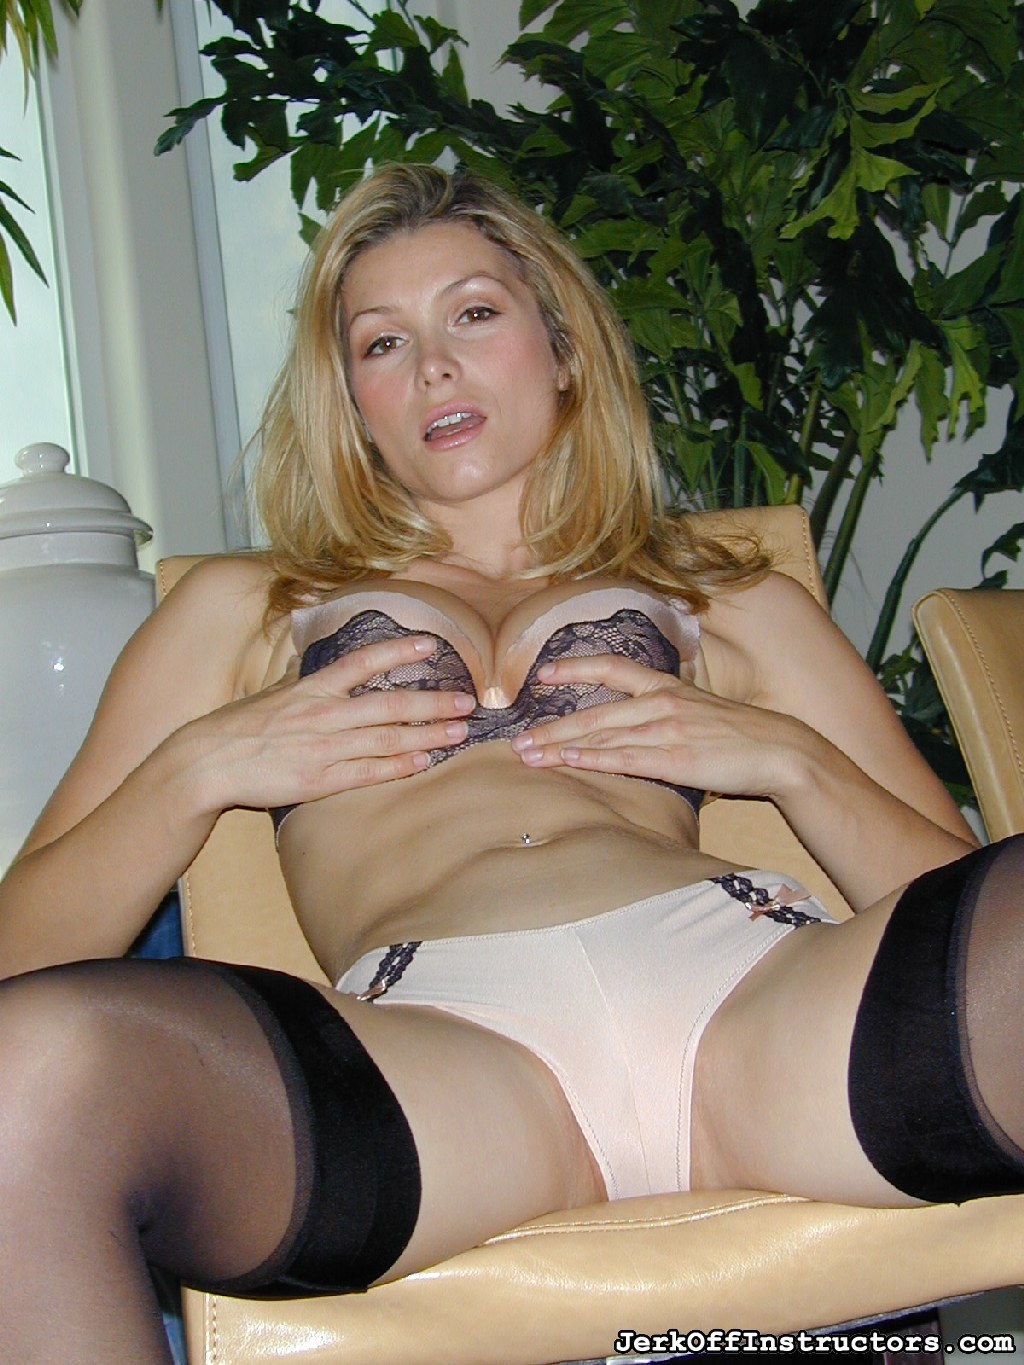 Nude bra amp panties 20  in tan nylon bikini panties and bra with black thigh highs heather vandeven keeps you rough by bending over and standing over you  she wants you to get a pleasant look at what she brought you. In tan nylon bikini panties and bra with black thigh highs, Heather Vandeven keeps you violent by bending over and standing over you. She wants you to get a elegant look at what she brought you.